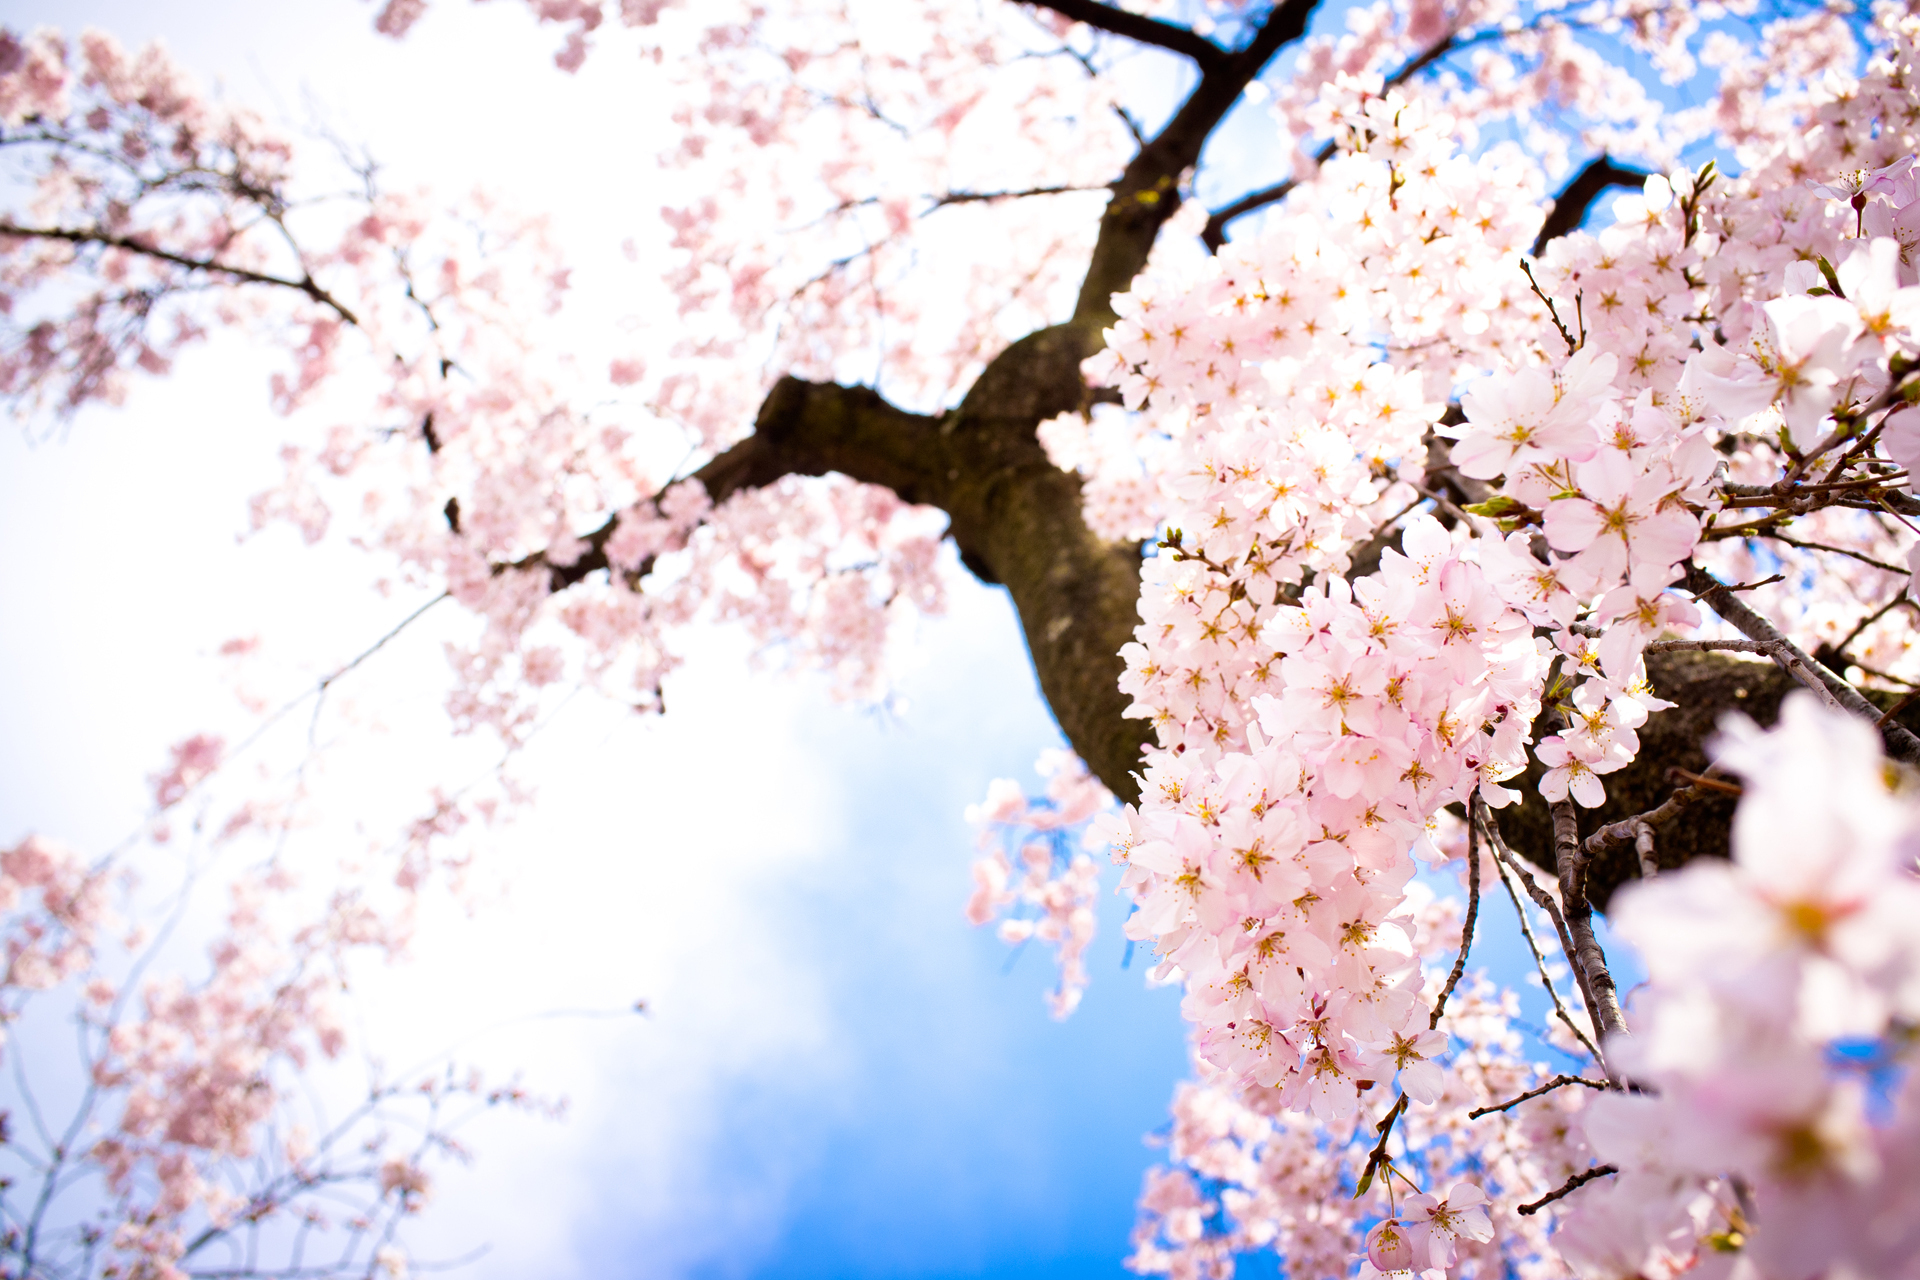 Cherry Blossom images Beautiful Cherry Blossom ♡ HD wallpaper and